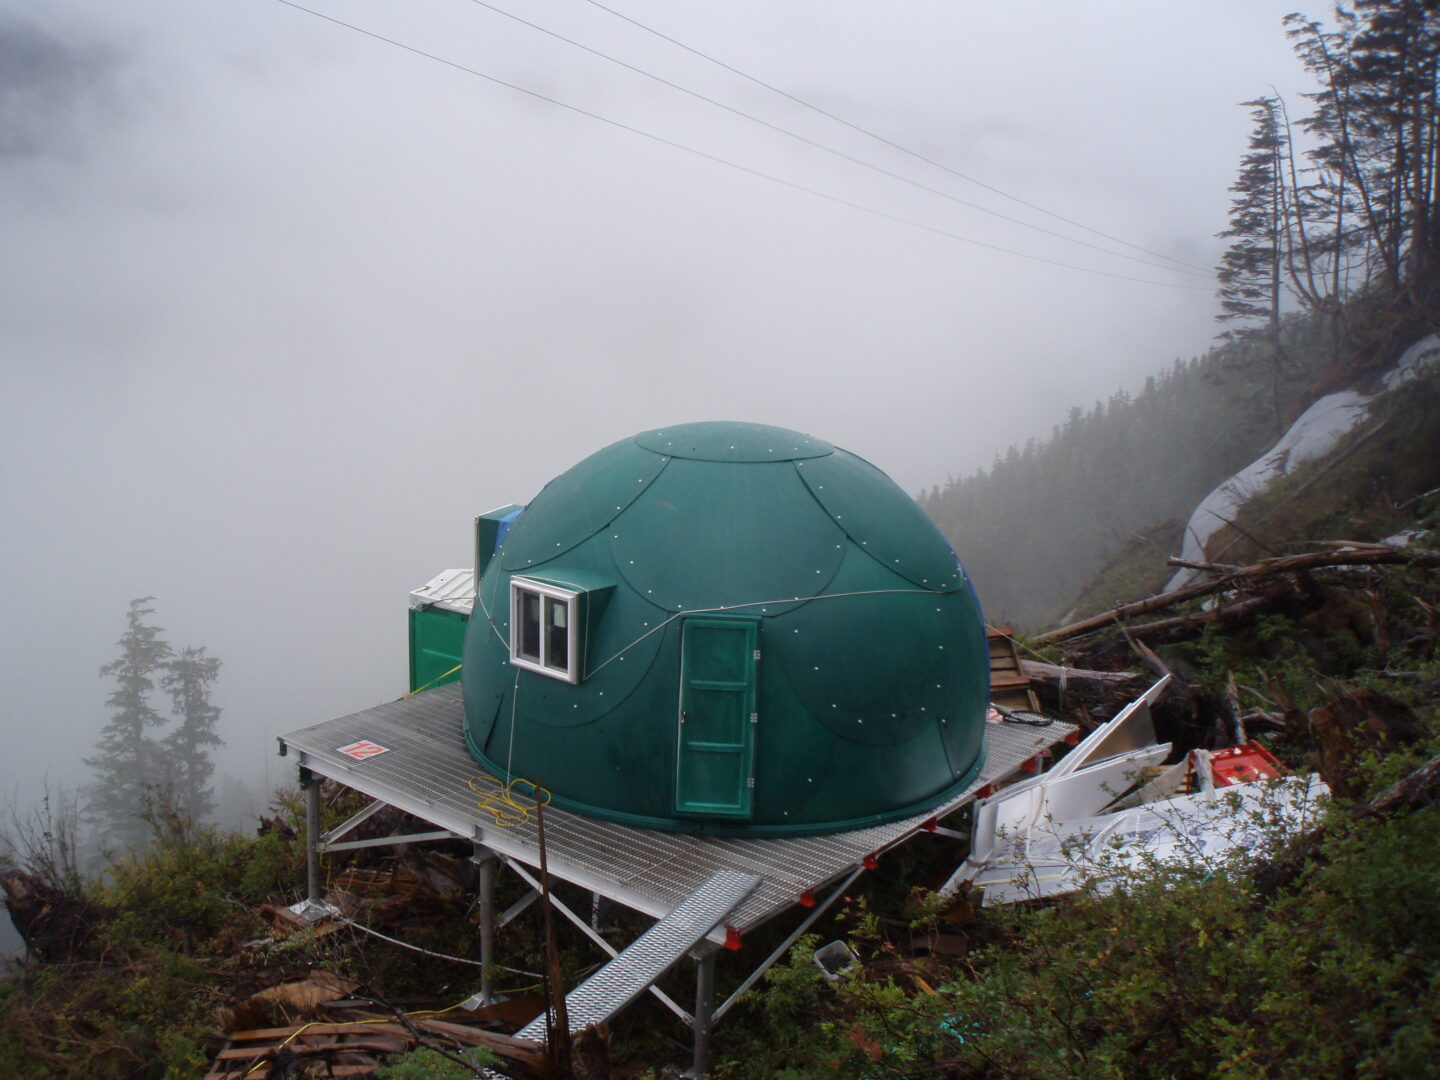 Green, safe, comfortable, fireproof safety shelter dome from InterShelter Inc